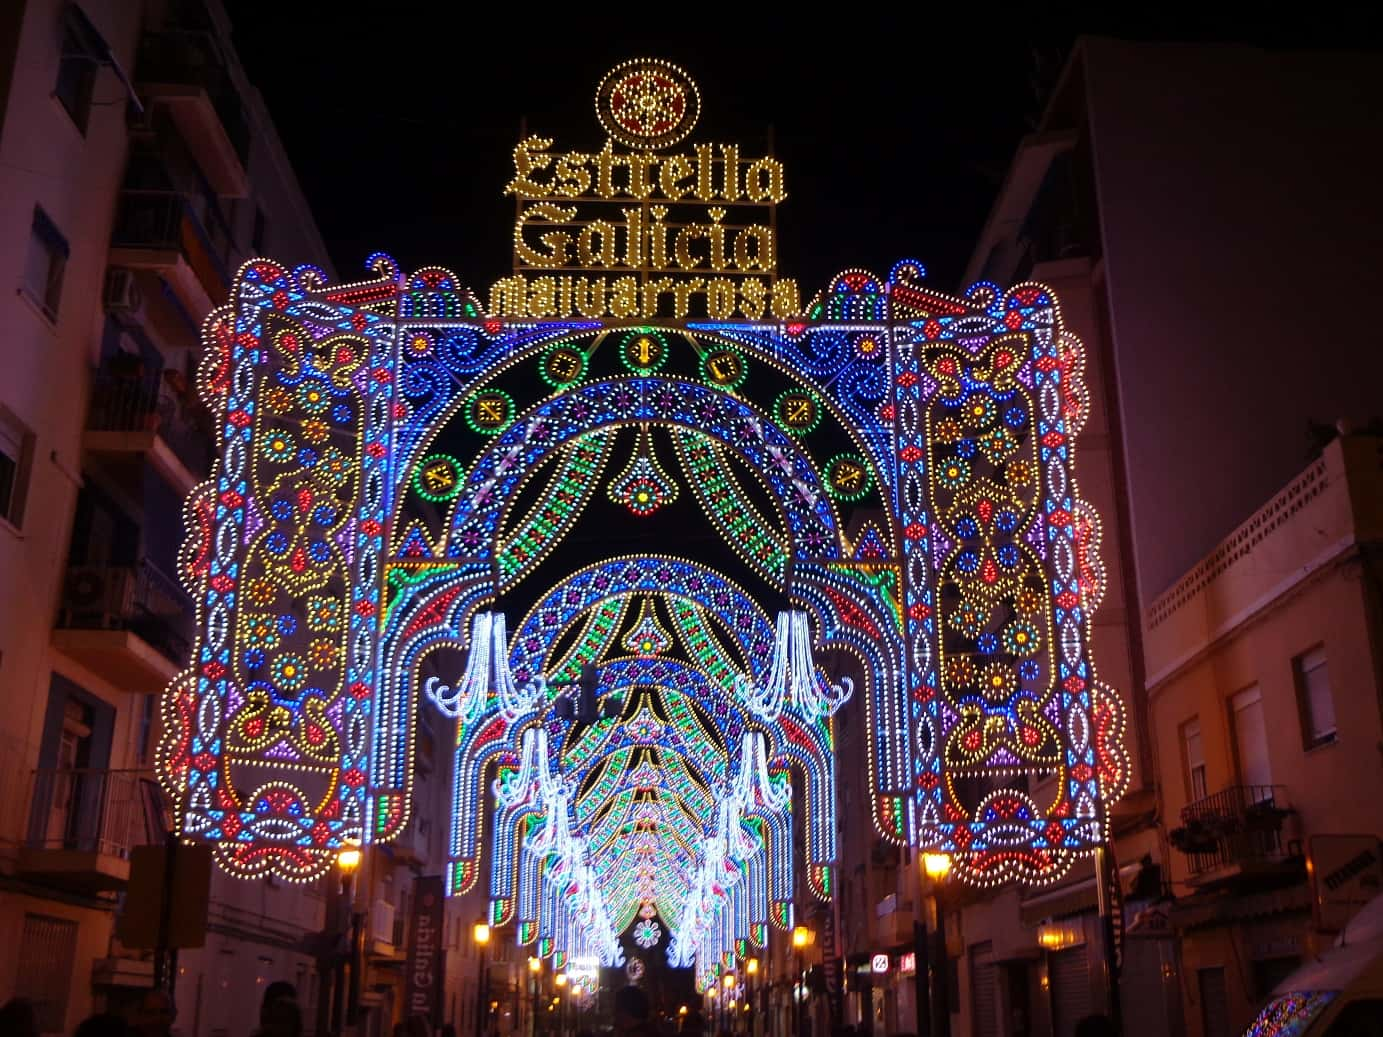 Falla Malvarrosa opens its illuminated streets. 1